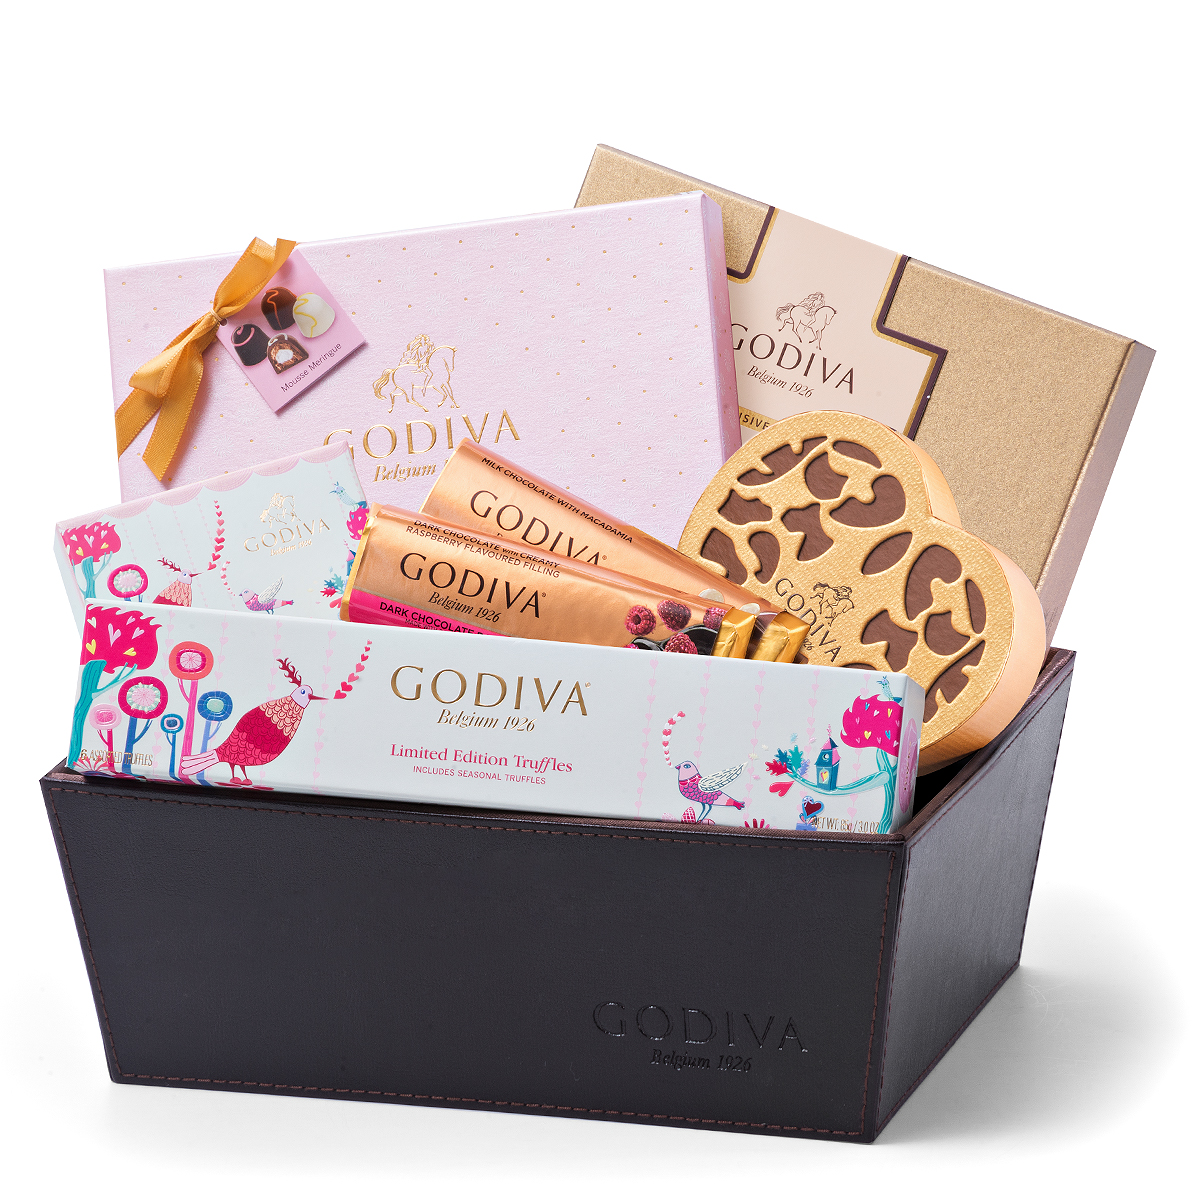 Top-Tier Chocolates for Valentine's Day Sweet confections that are sure to please Written by Cathryn Vaccaro This heart-shaped gift box is filled with delicious chocolates and seasonal truffles. Piece Keepsake Chocolate Heart, $, GODIVA, bauernhoftester.ml